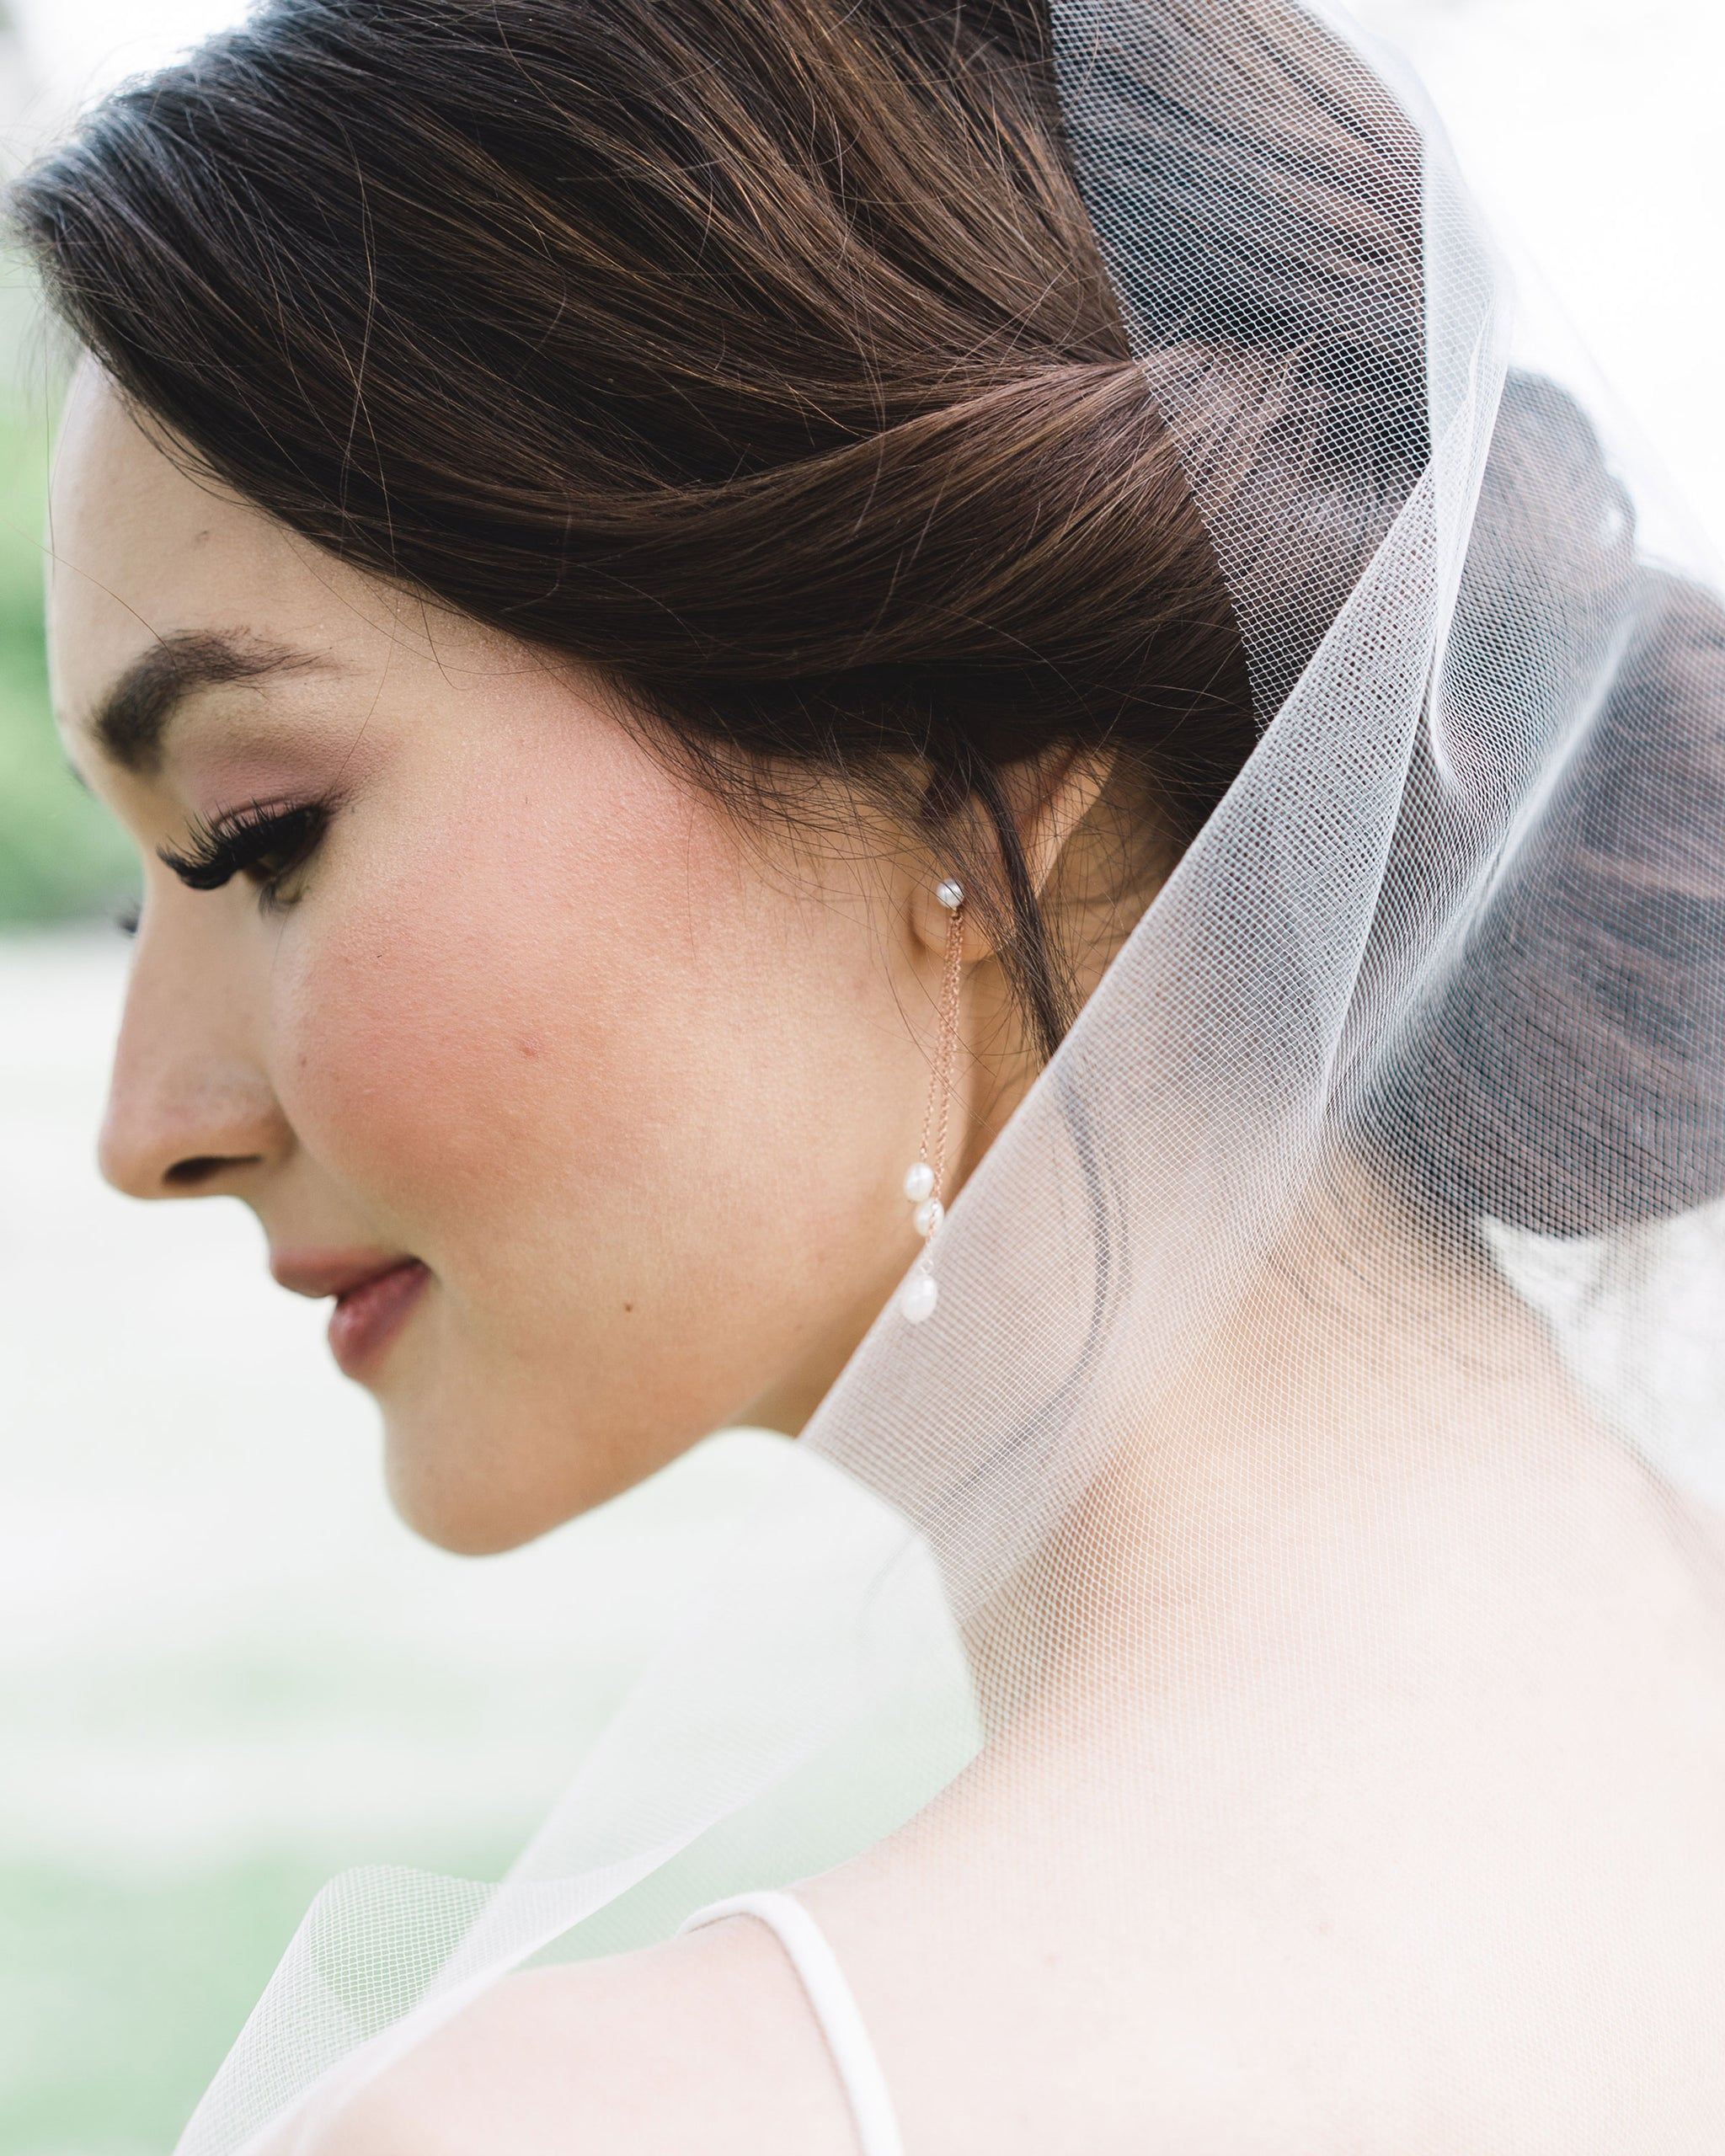 Model photo of the Dainty Pearl Trio Earrings paired with an airy veil without gathers